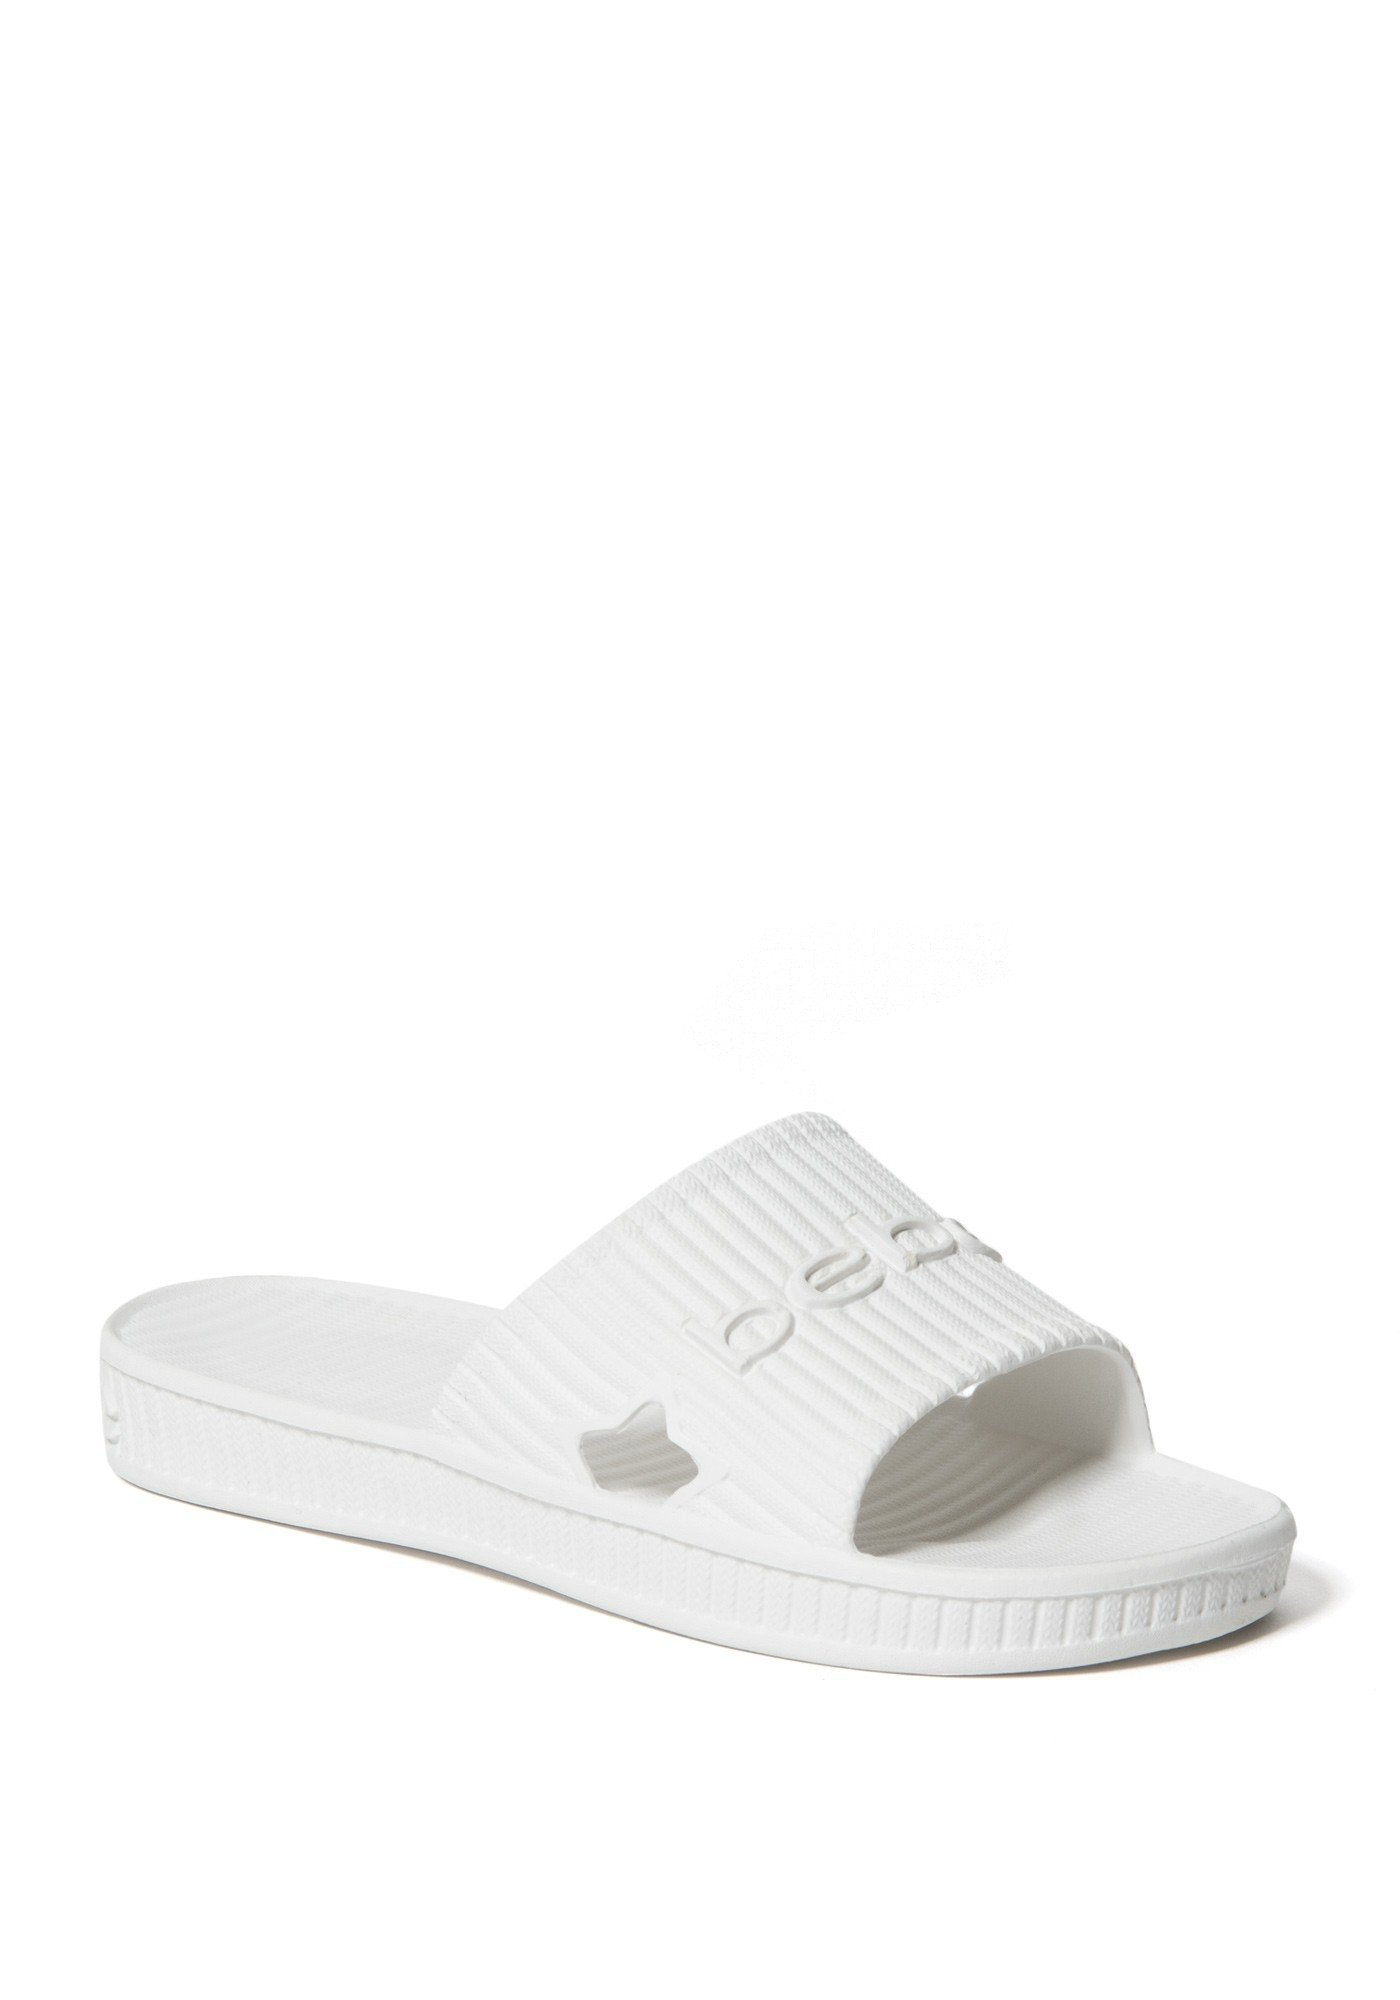 Bebe Women's Craze Logo Slides Shoe, Size 6 in Ice White Synthetic